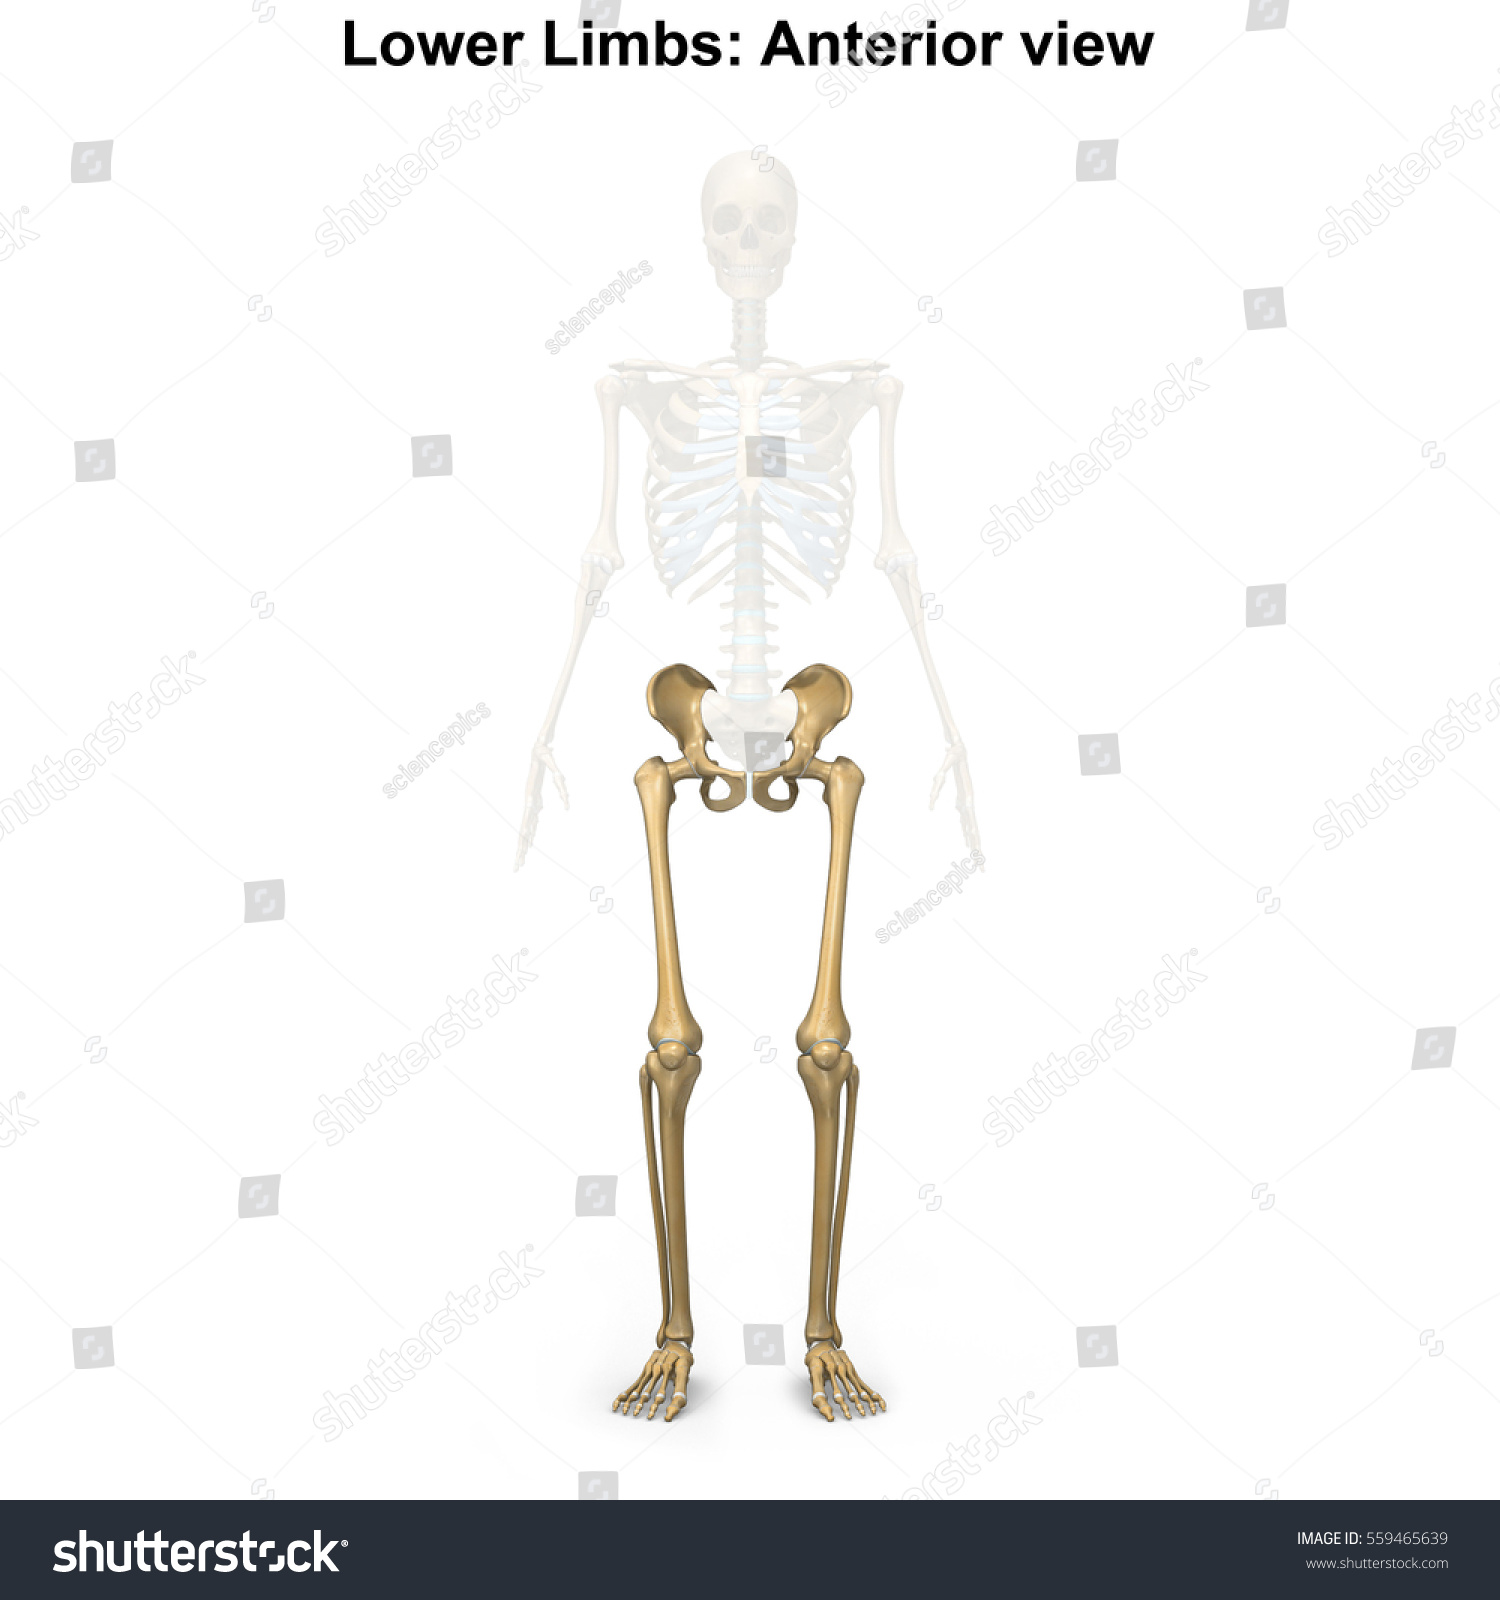 Bones Lower Limbs 3 D Illustration Stock Illustration 559465639 ...